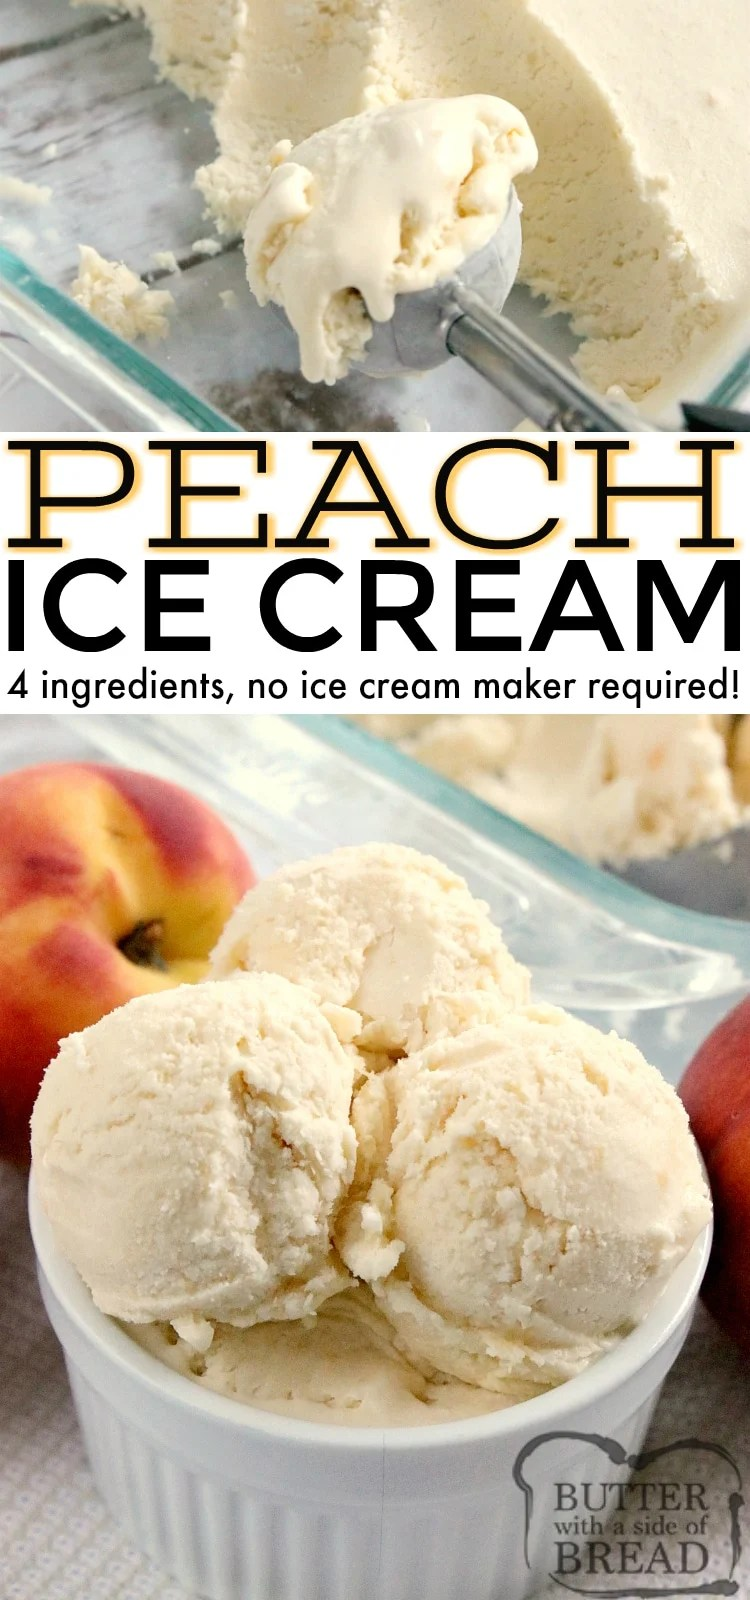 Peach Ice Cream is made with fresh peaches and real whipped cream, no ice cream maker required! Homemade peach ice cream is made with only 4 ingredients and a few minutes of preparation.